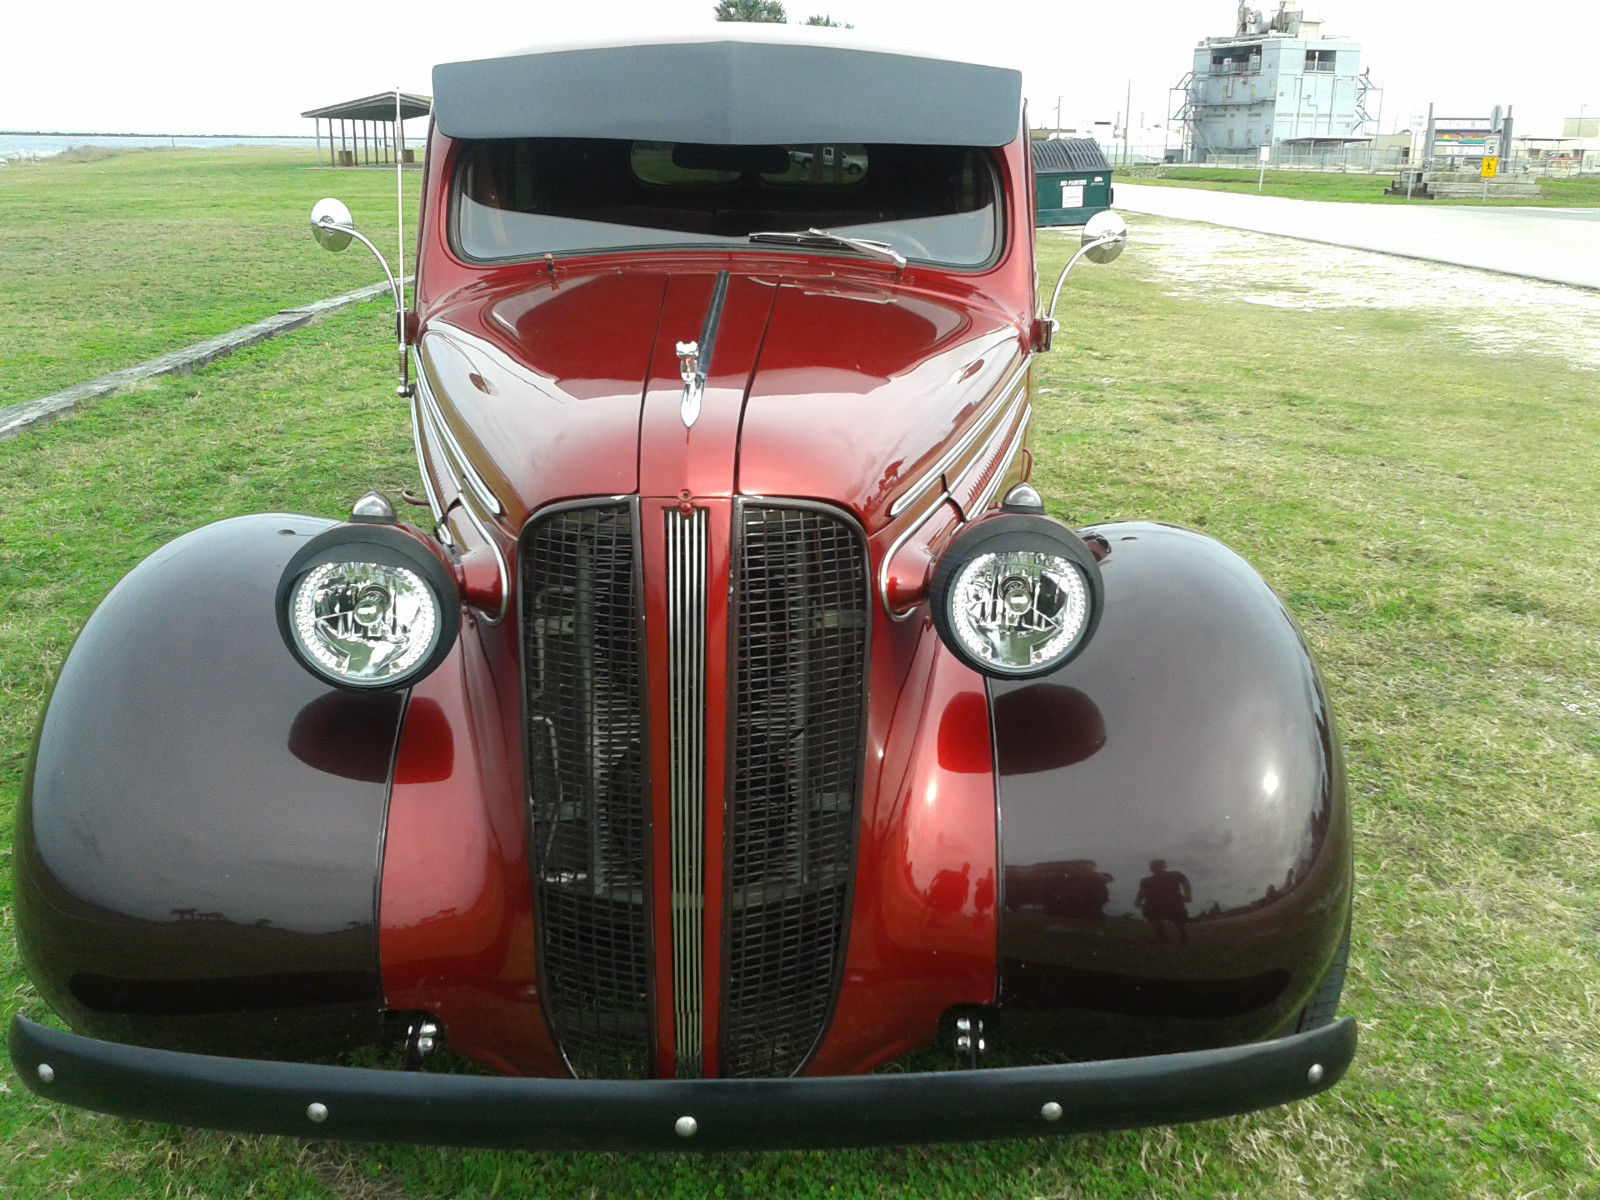 Street Rod Air Conditioners : Dodge suicide doors street rod air conditioning